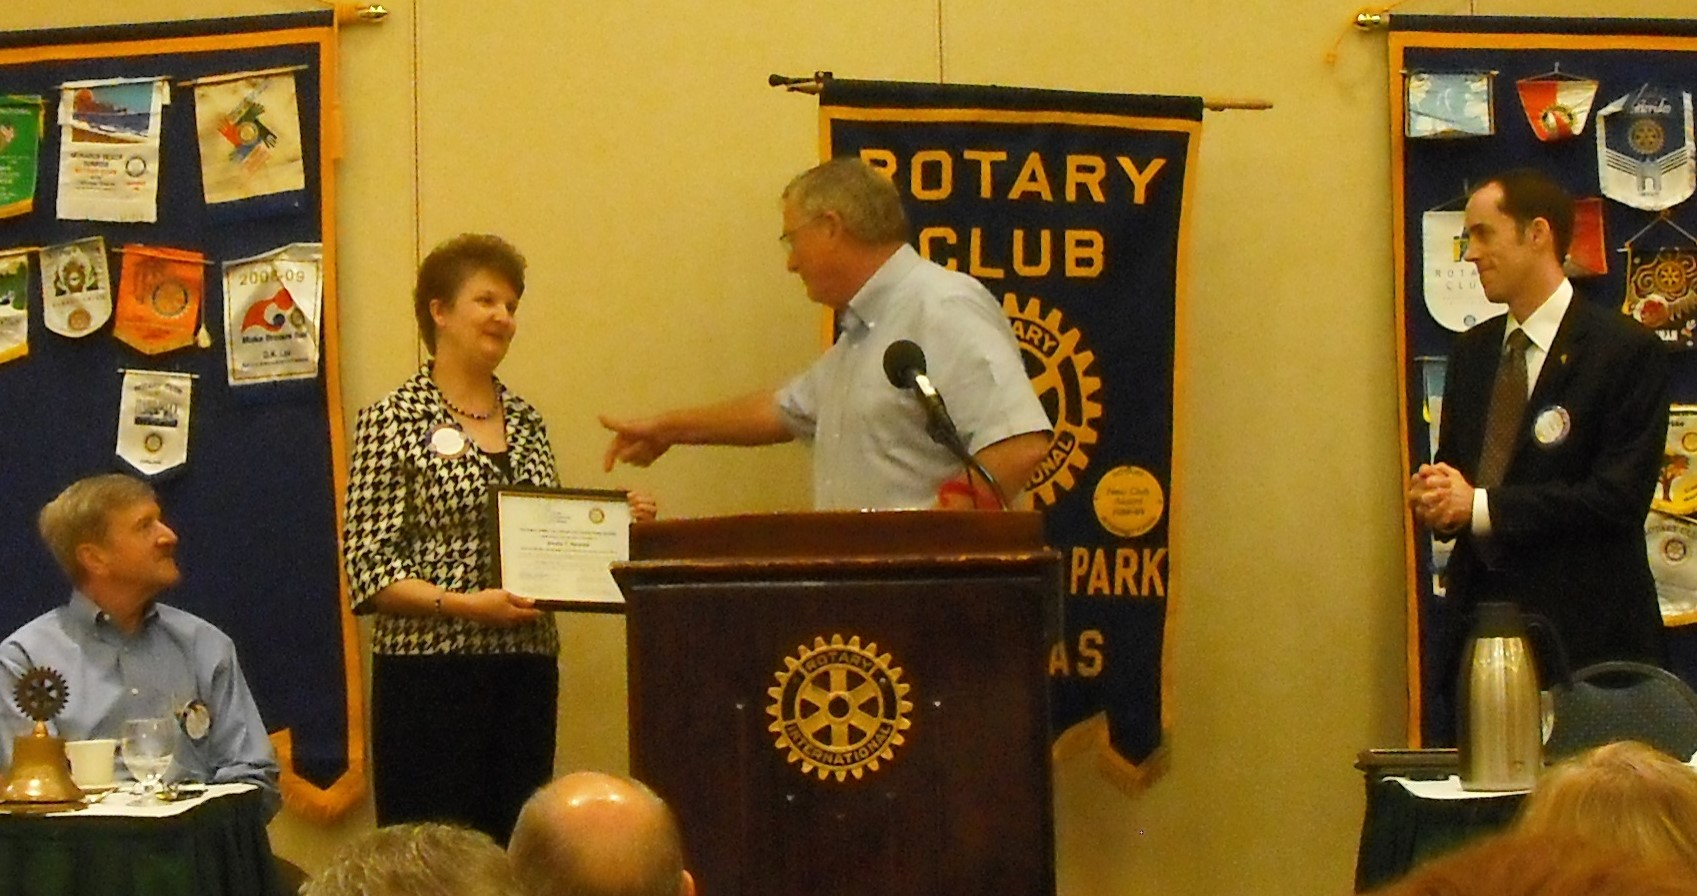 Janeé receiving the 2010 Rotary Award